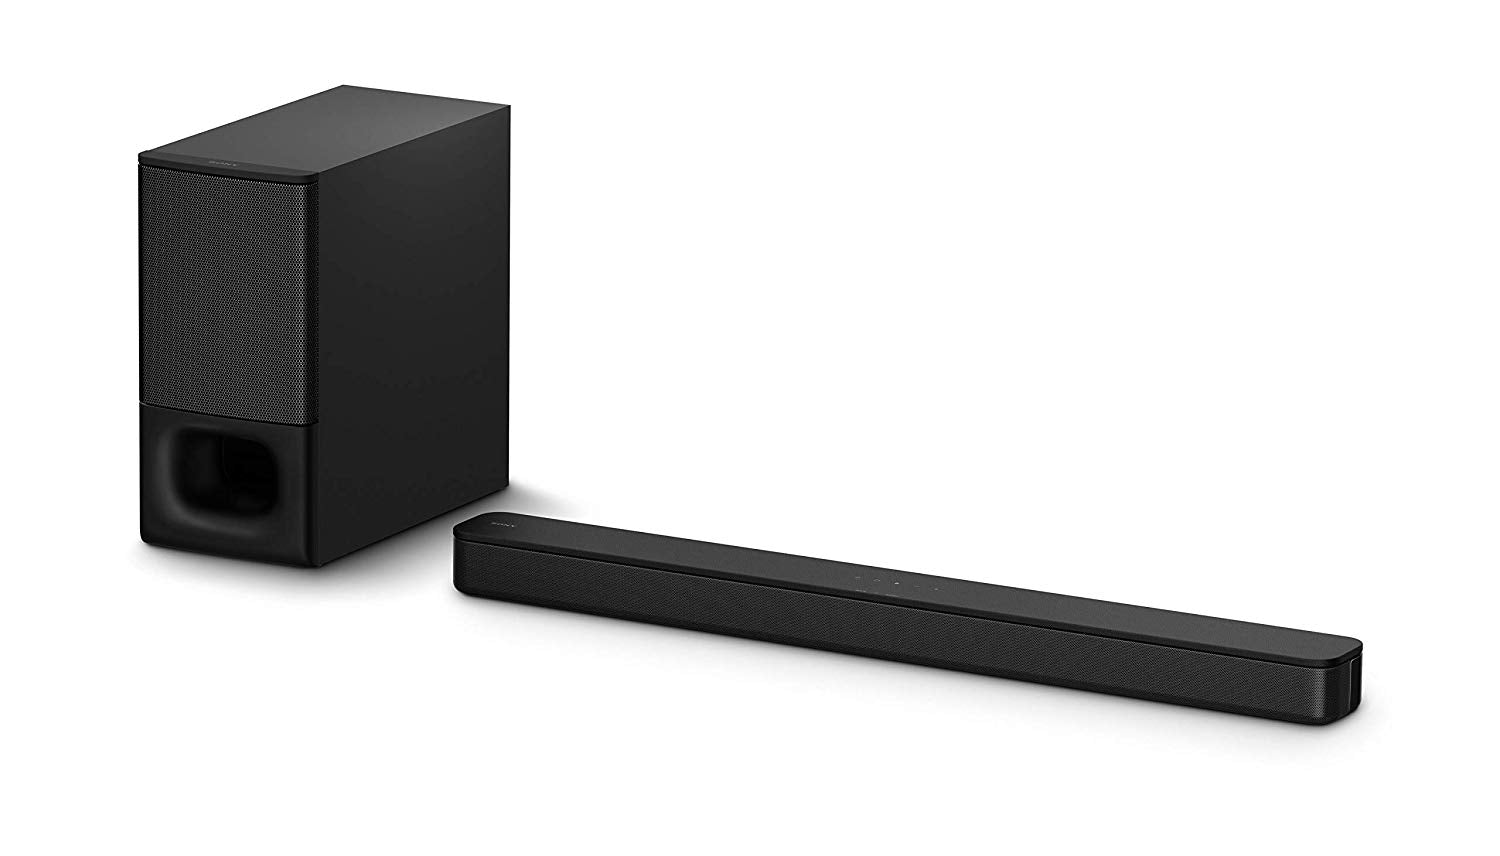 Sony HT-S350 Wireless 2.1 Ch Soundbar - Black get best offers deals free and coupons online at buythevalue.in